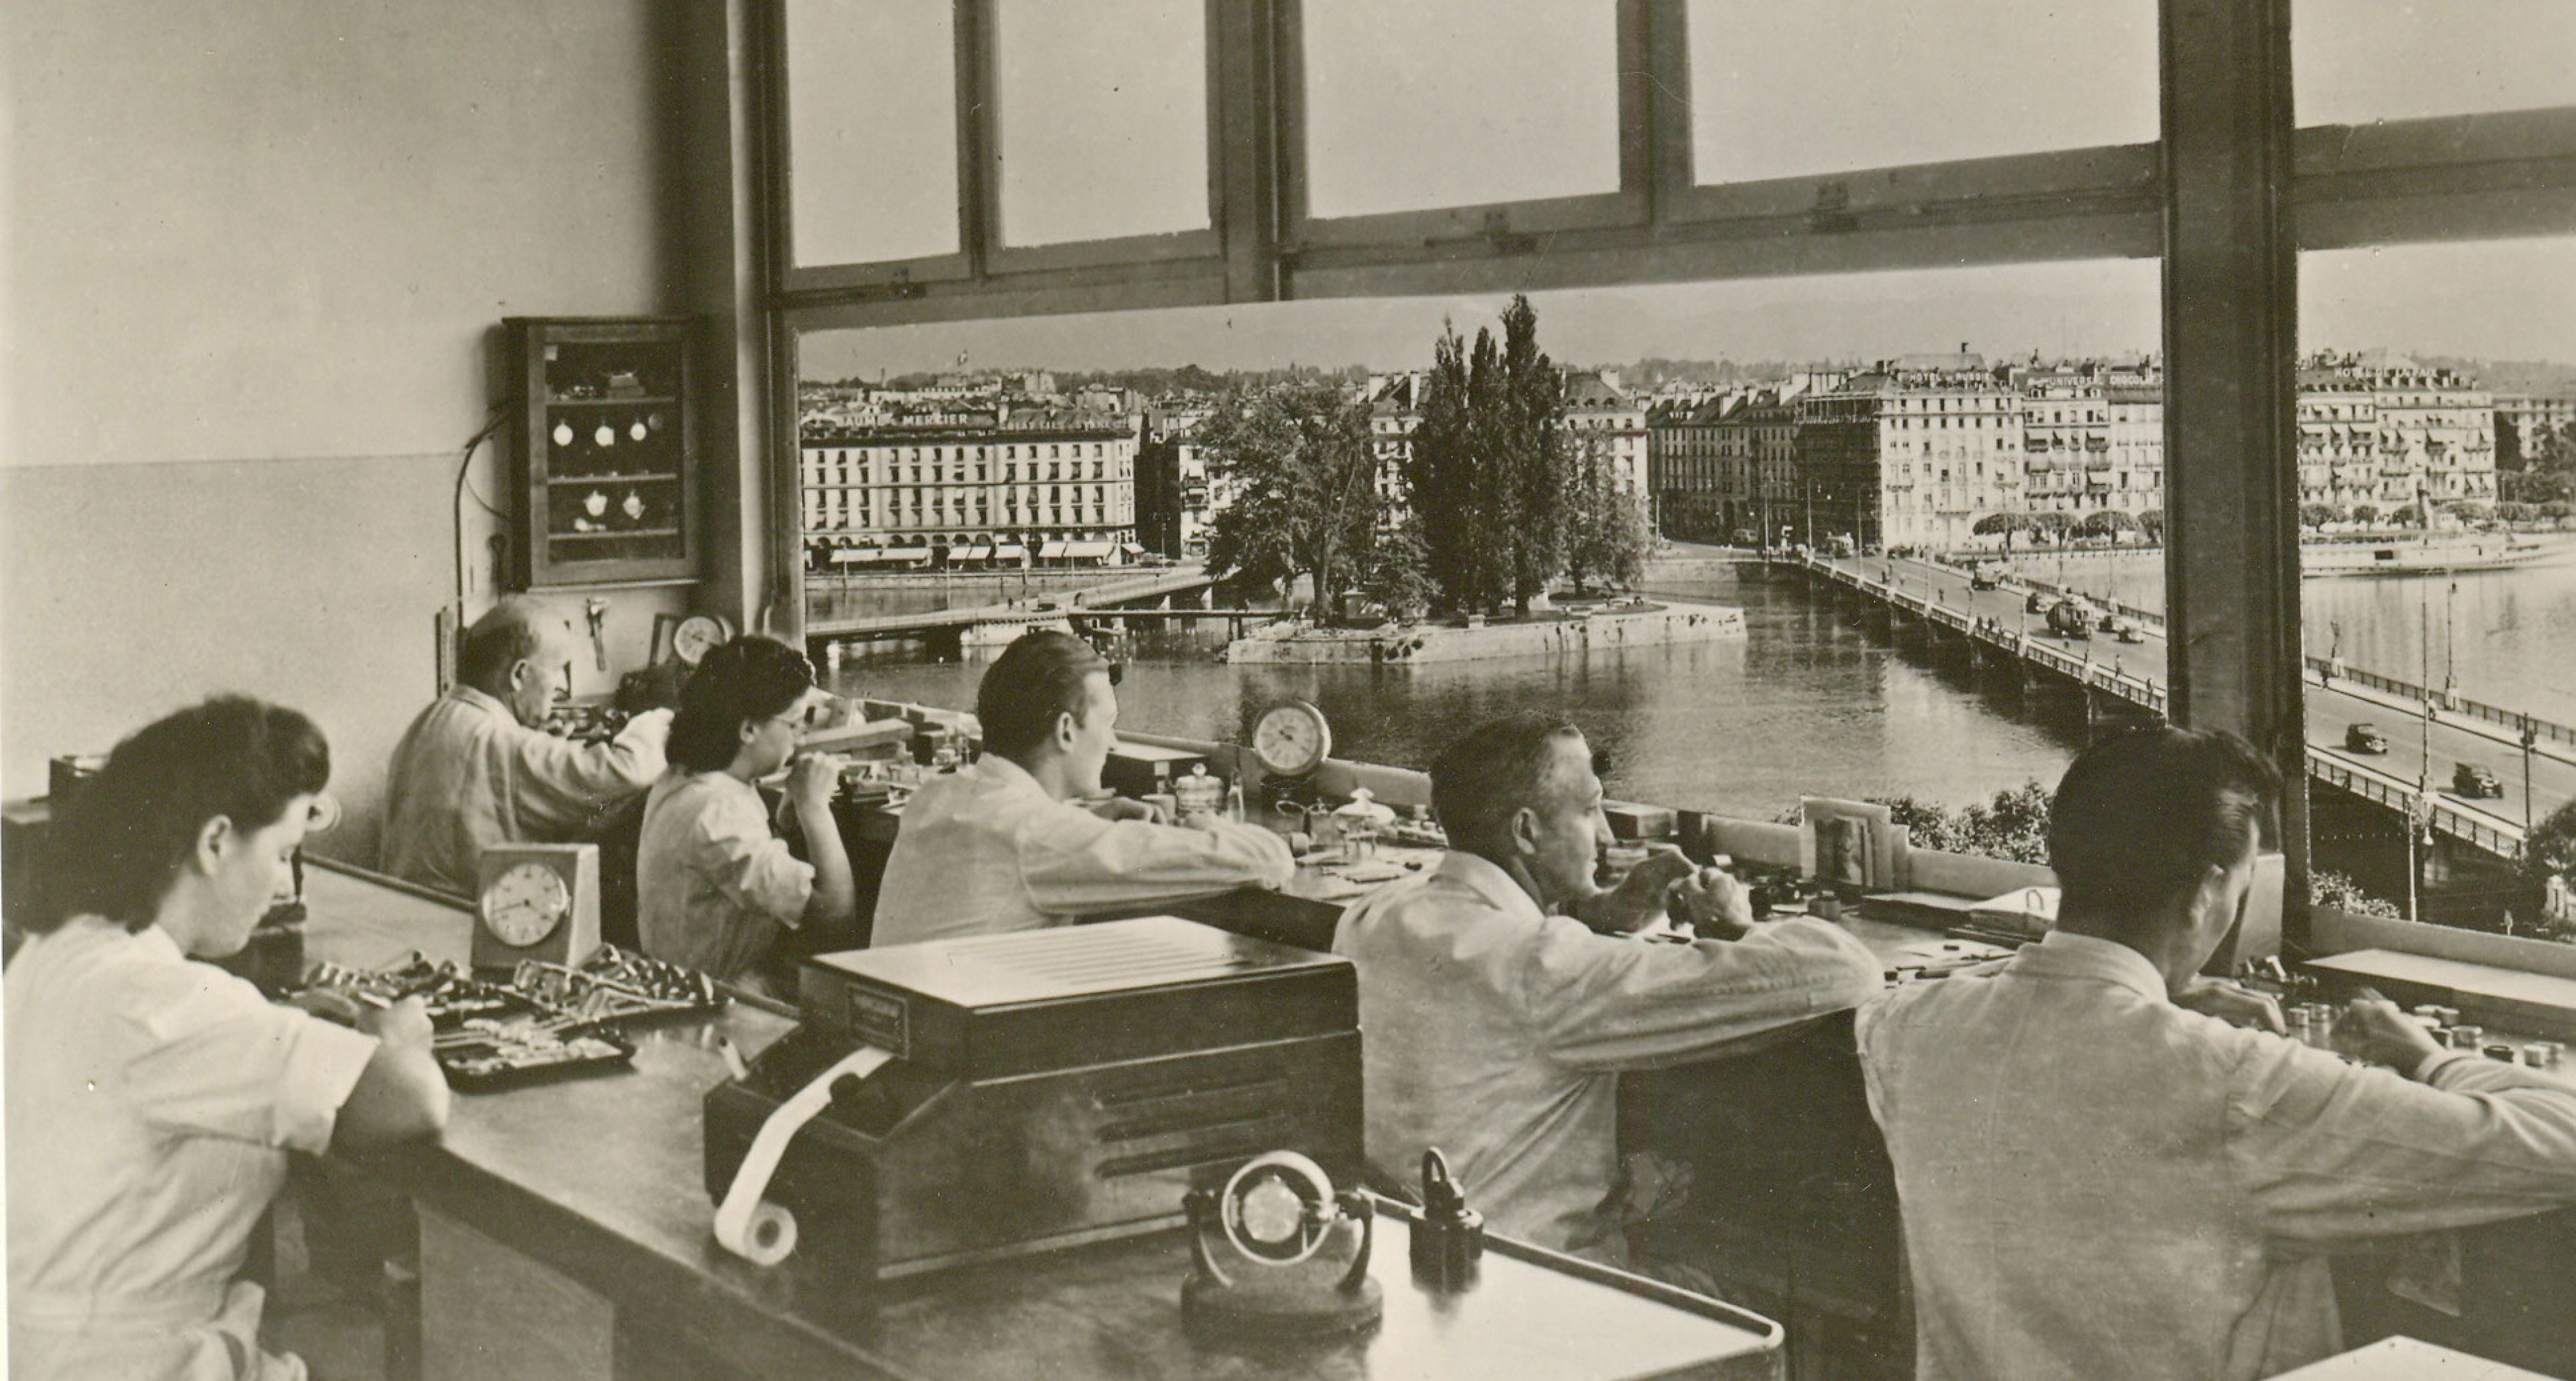 Workshop with a view! The Patek workshop in the 1950s